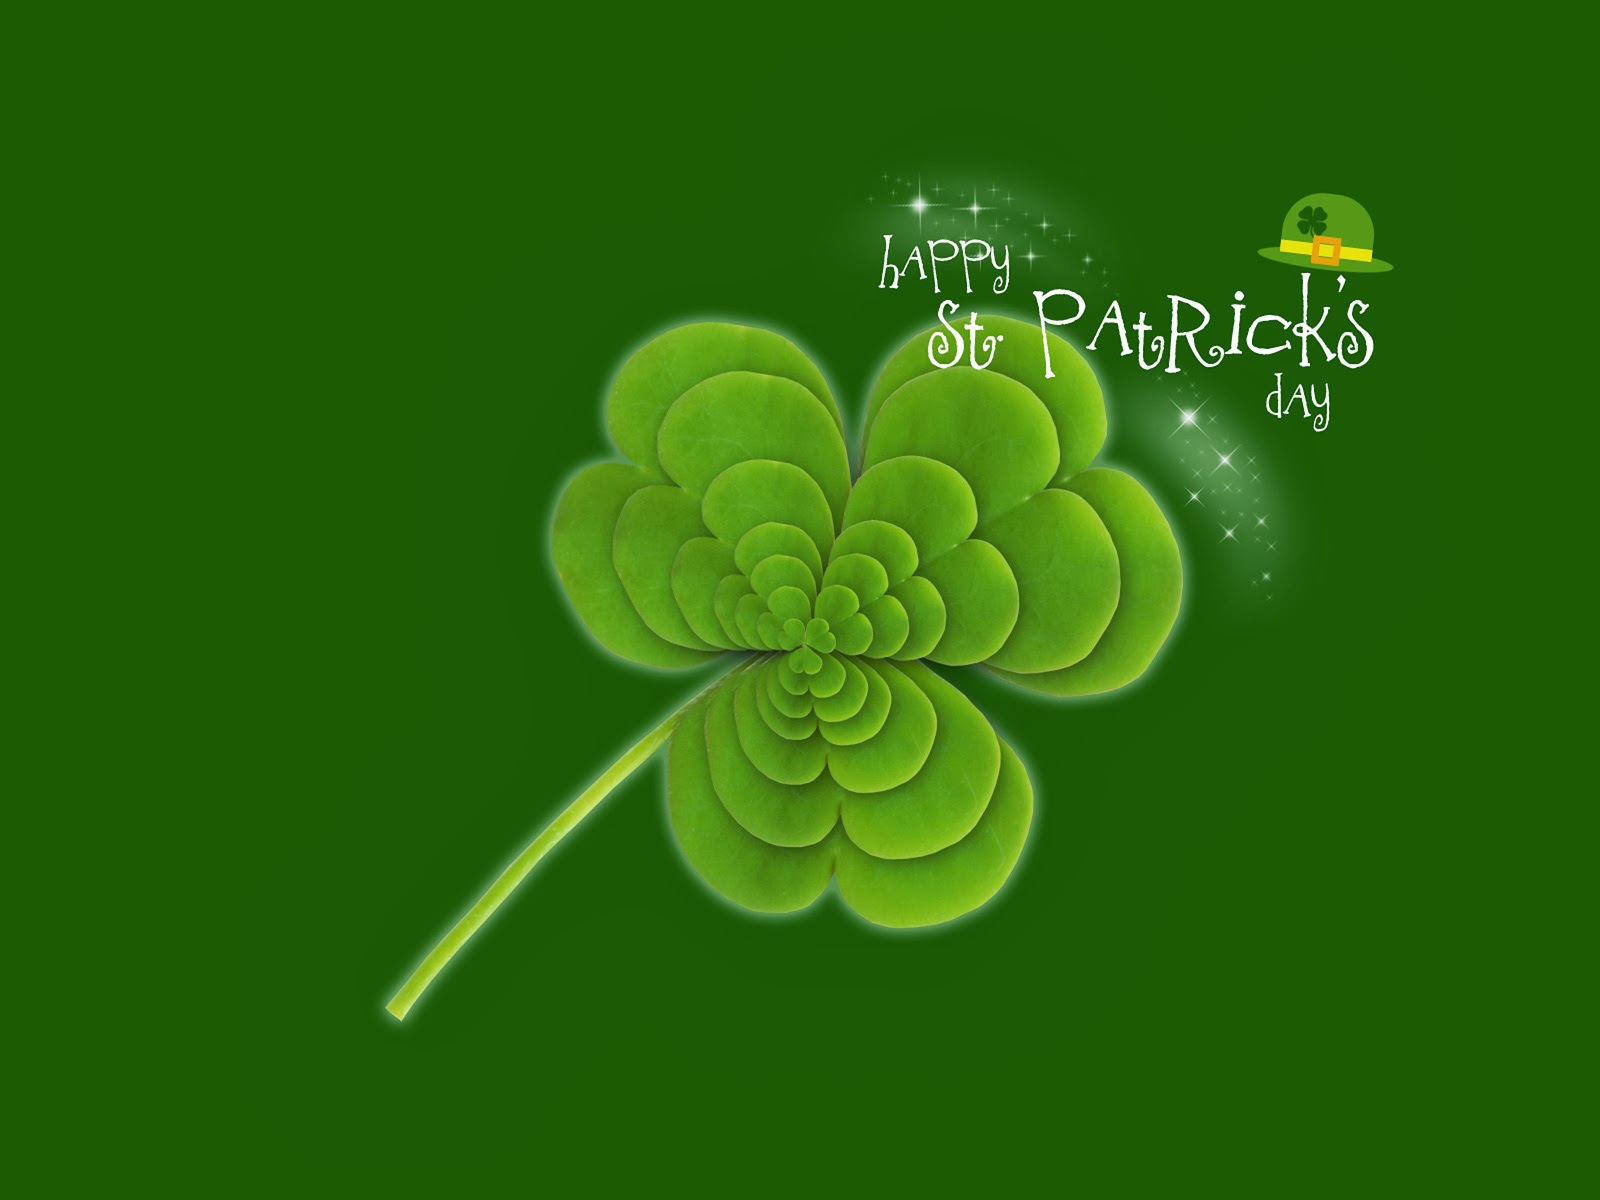 wallpaperstpatricksdaycelebrationwallpaperstpatricksdayjpg 1600x1200